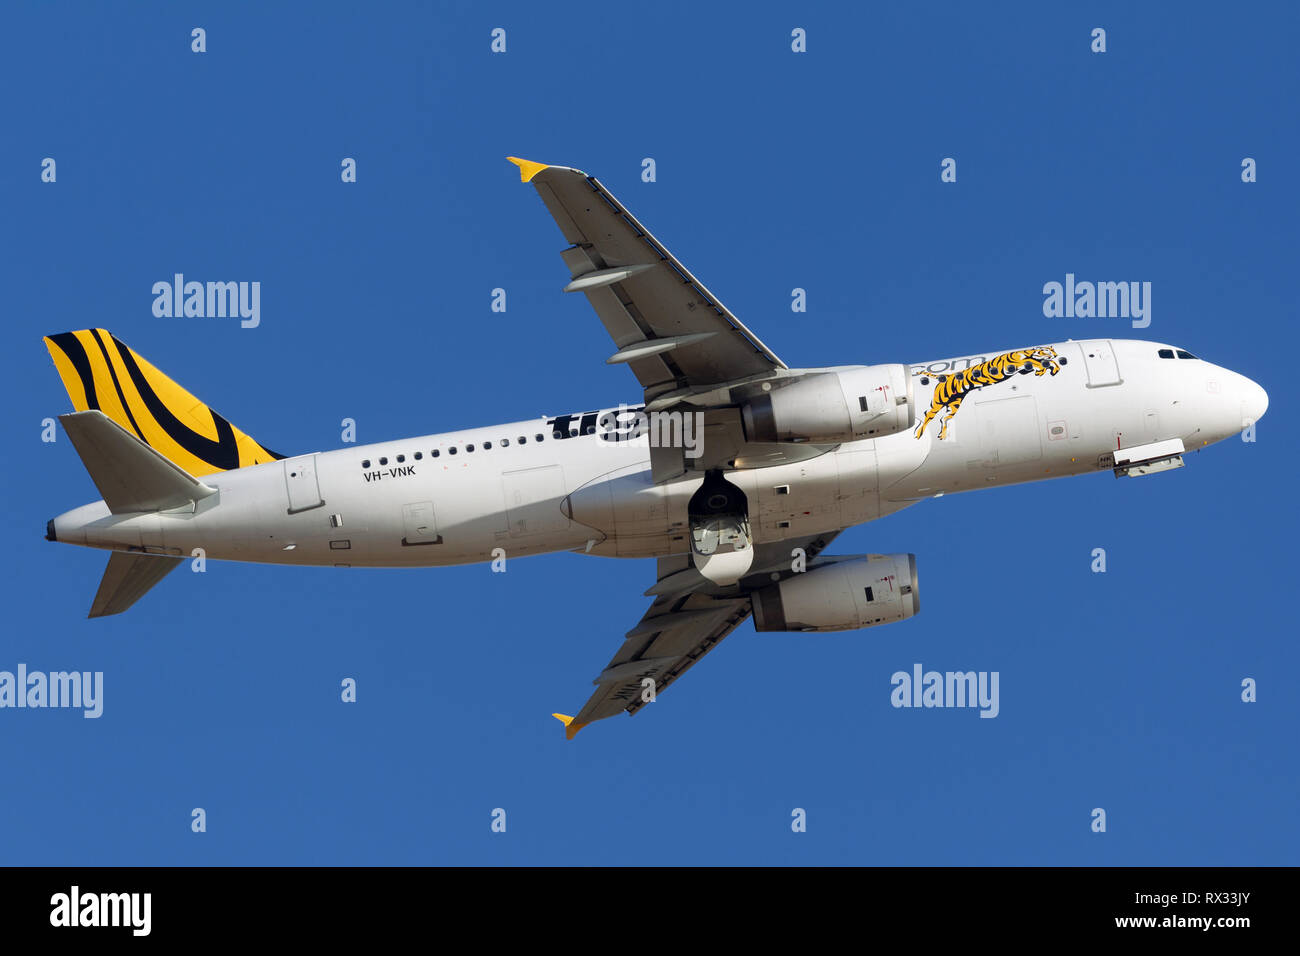 Tiger Airways Airbus A320 airliner taking off from Adelaide Airport. - Stock Image